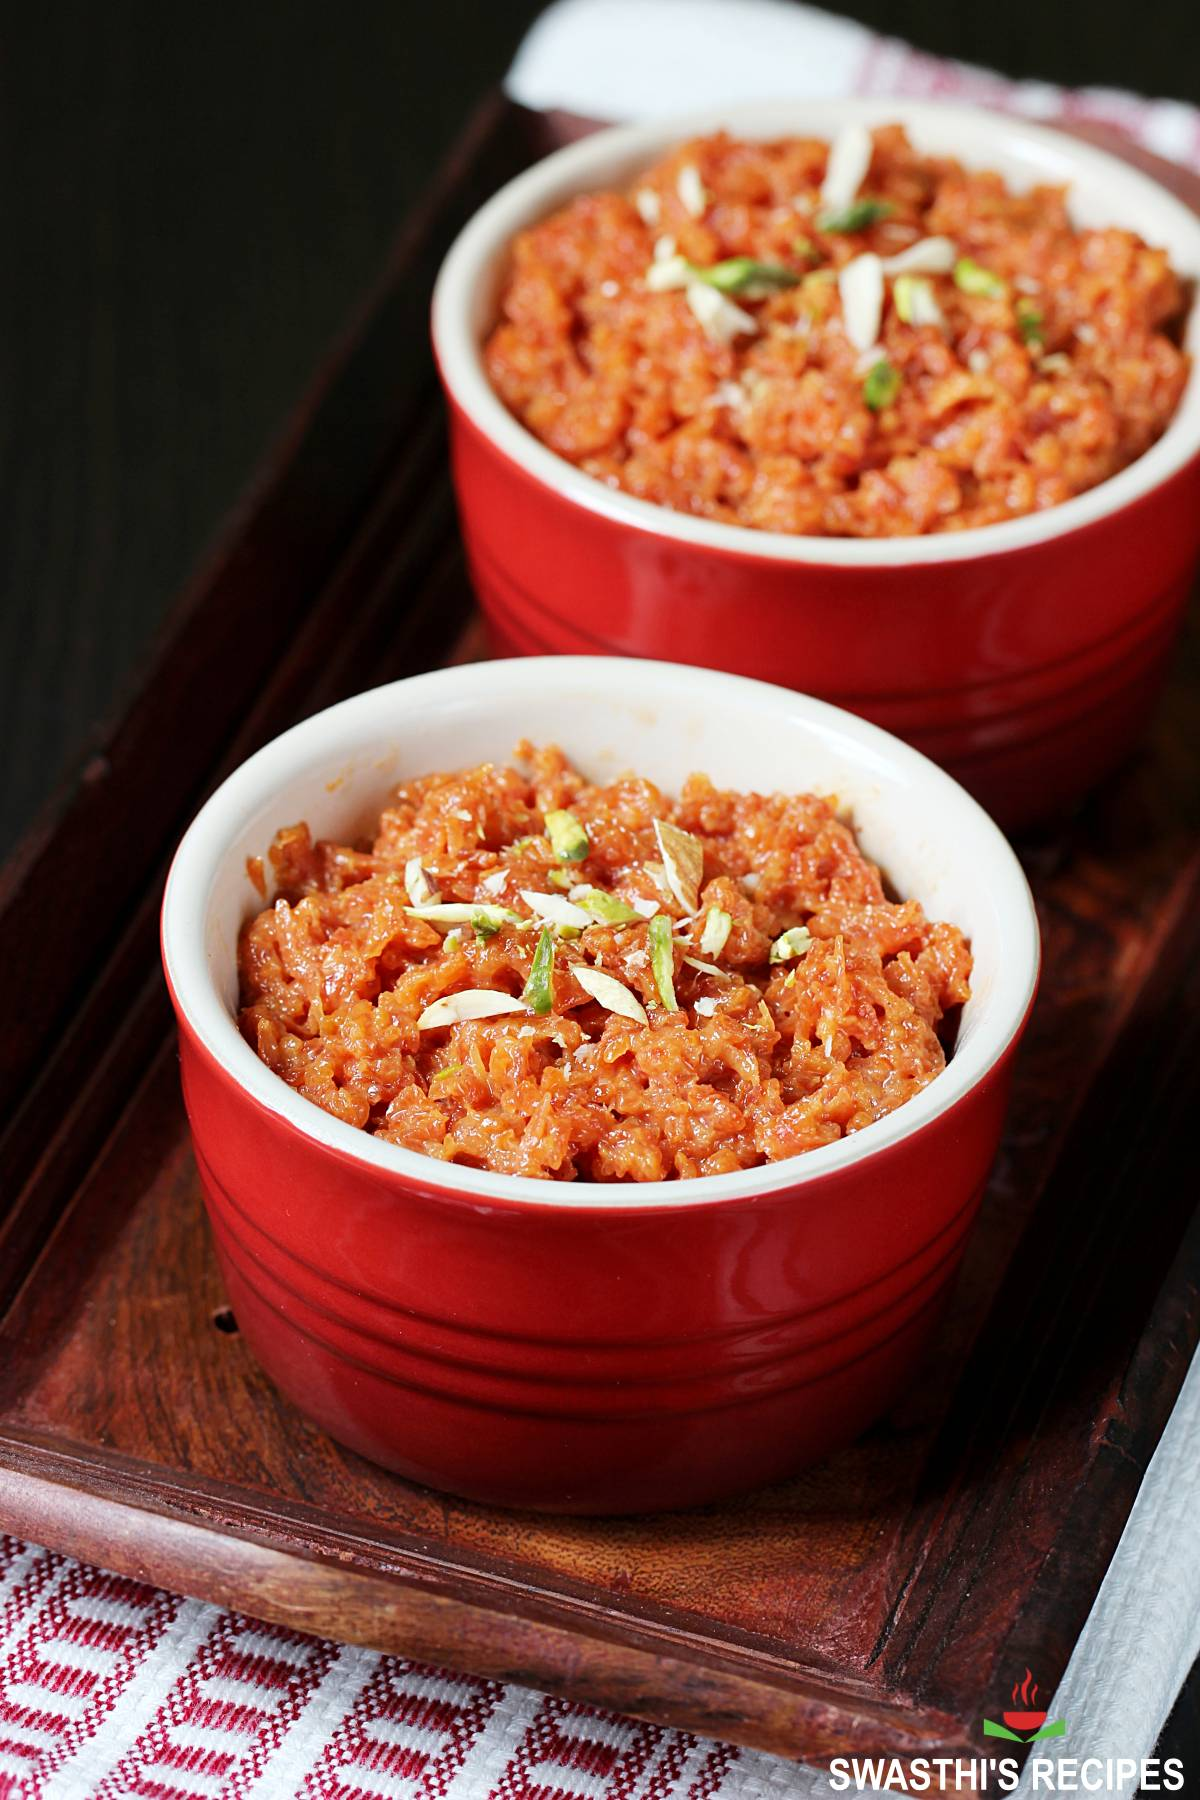 carrot halwa also known as gajar halwa served in a bowl with nuts